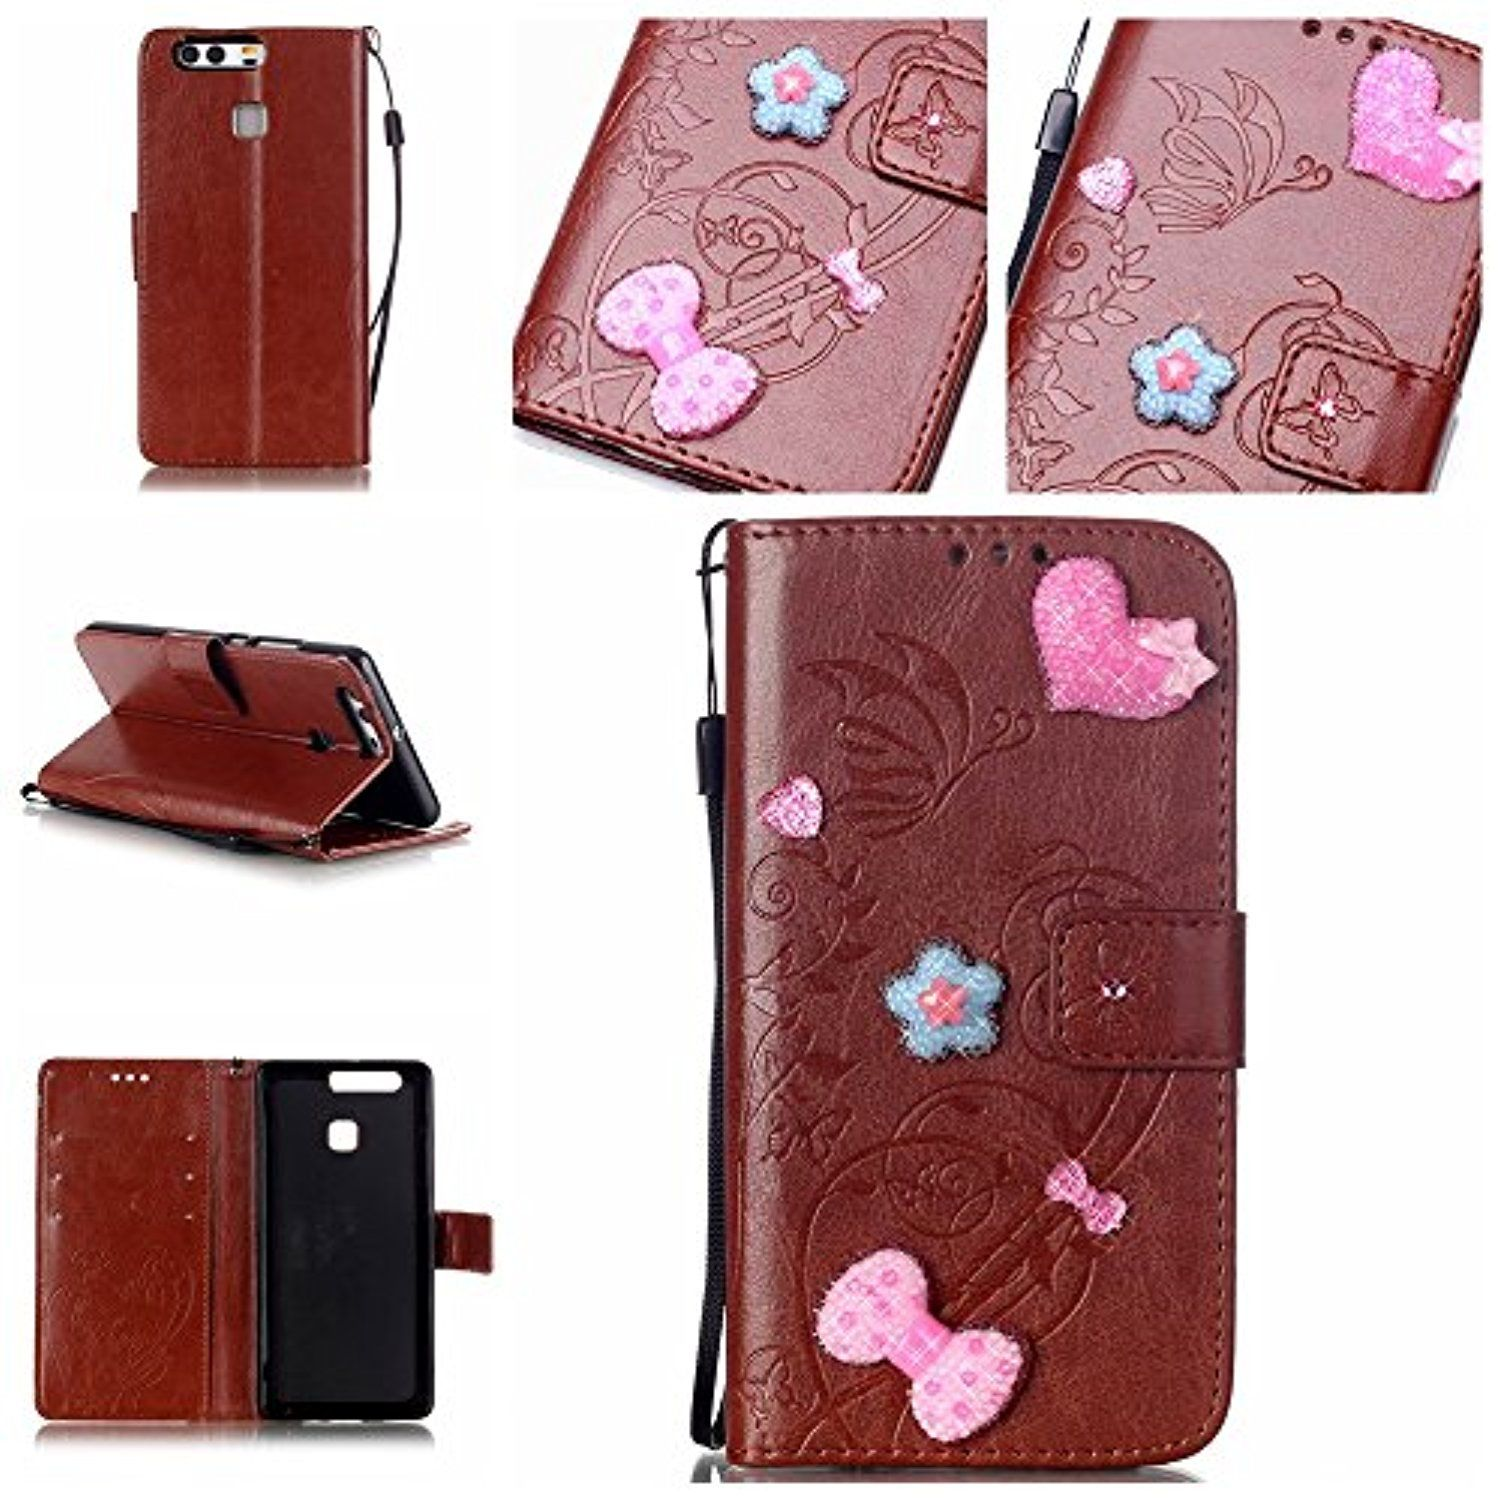 Huawei P9 Case,Huawei P9 Wallet Case,P9 Case,Spigeotter Flip Cover Wallet PU Leather with Stand + Lanyard Case for Huawei P9 Brown -- Awesome products selected by Anna Churchill